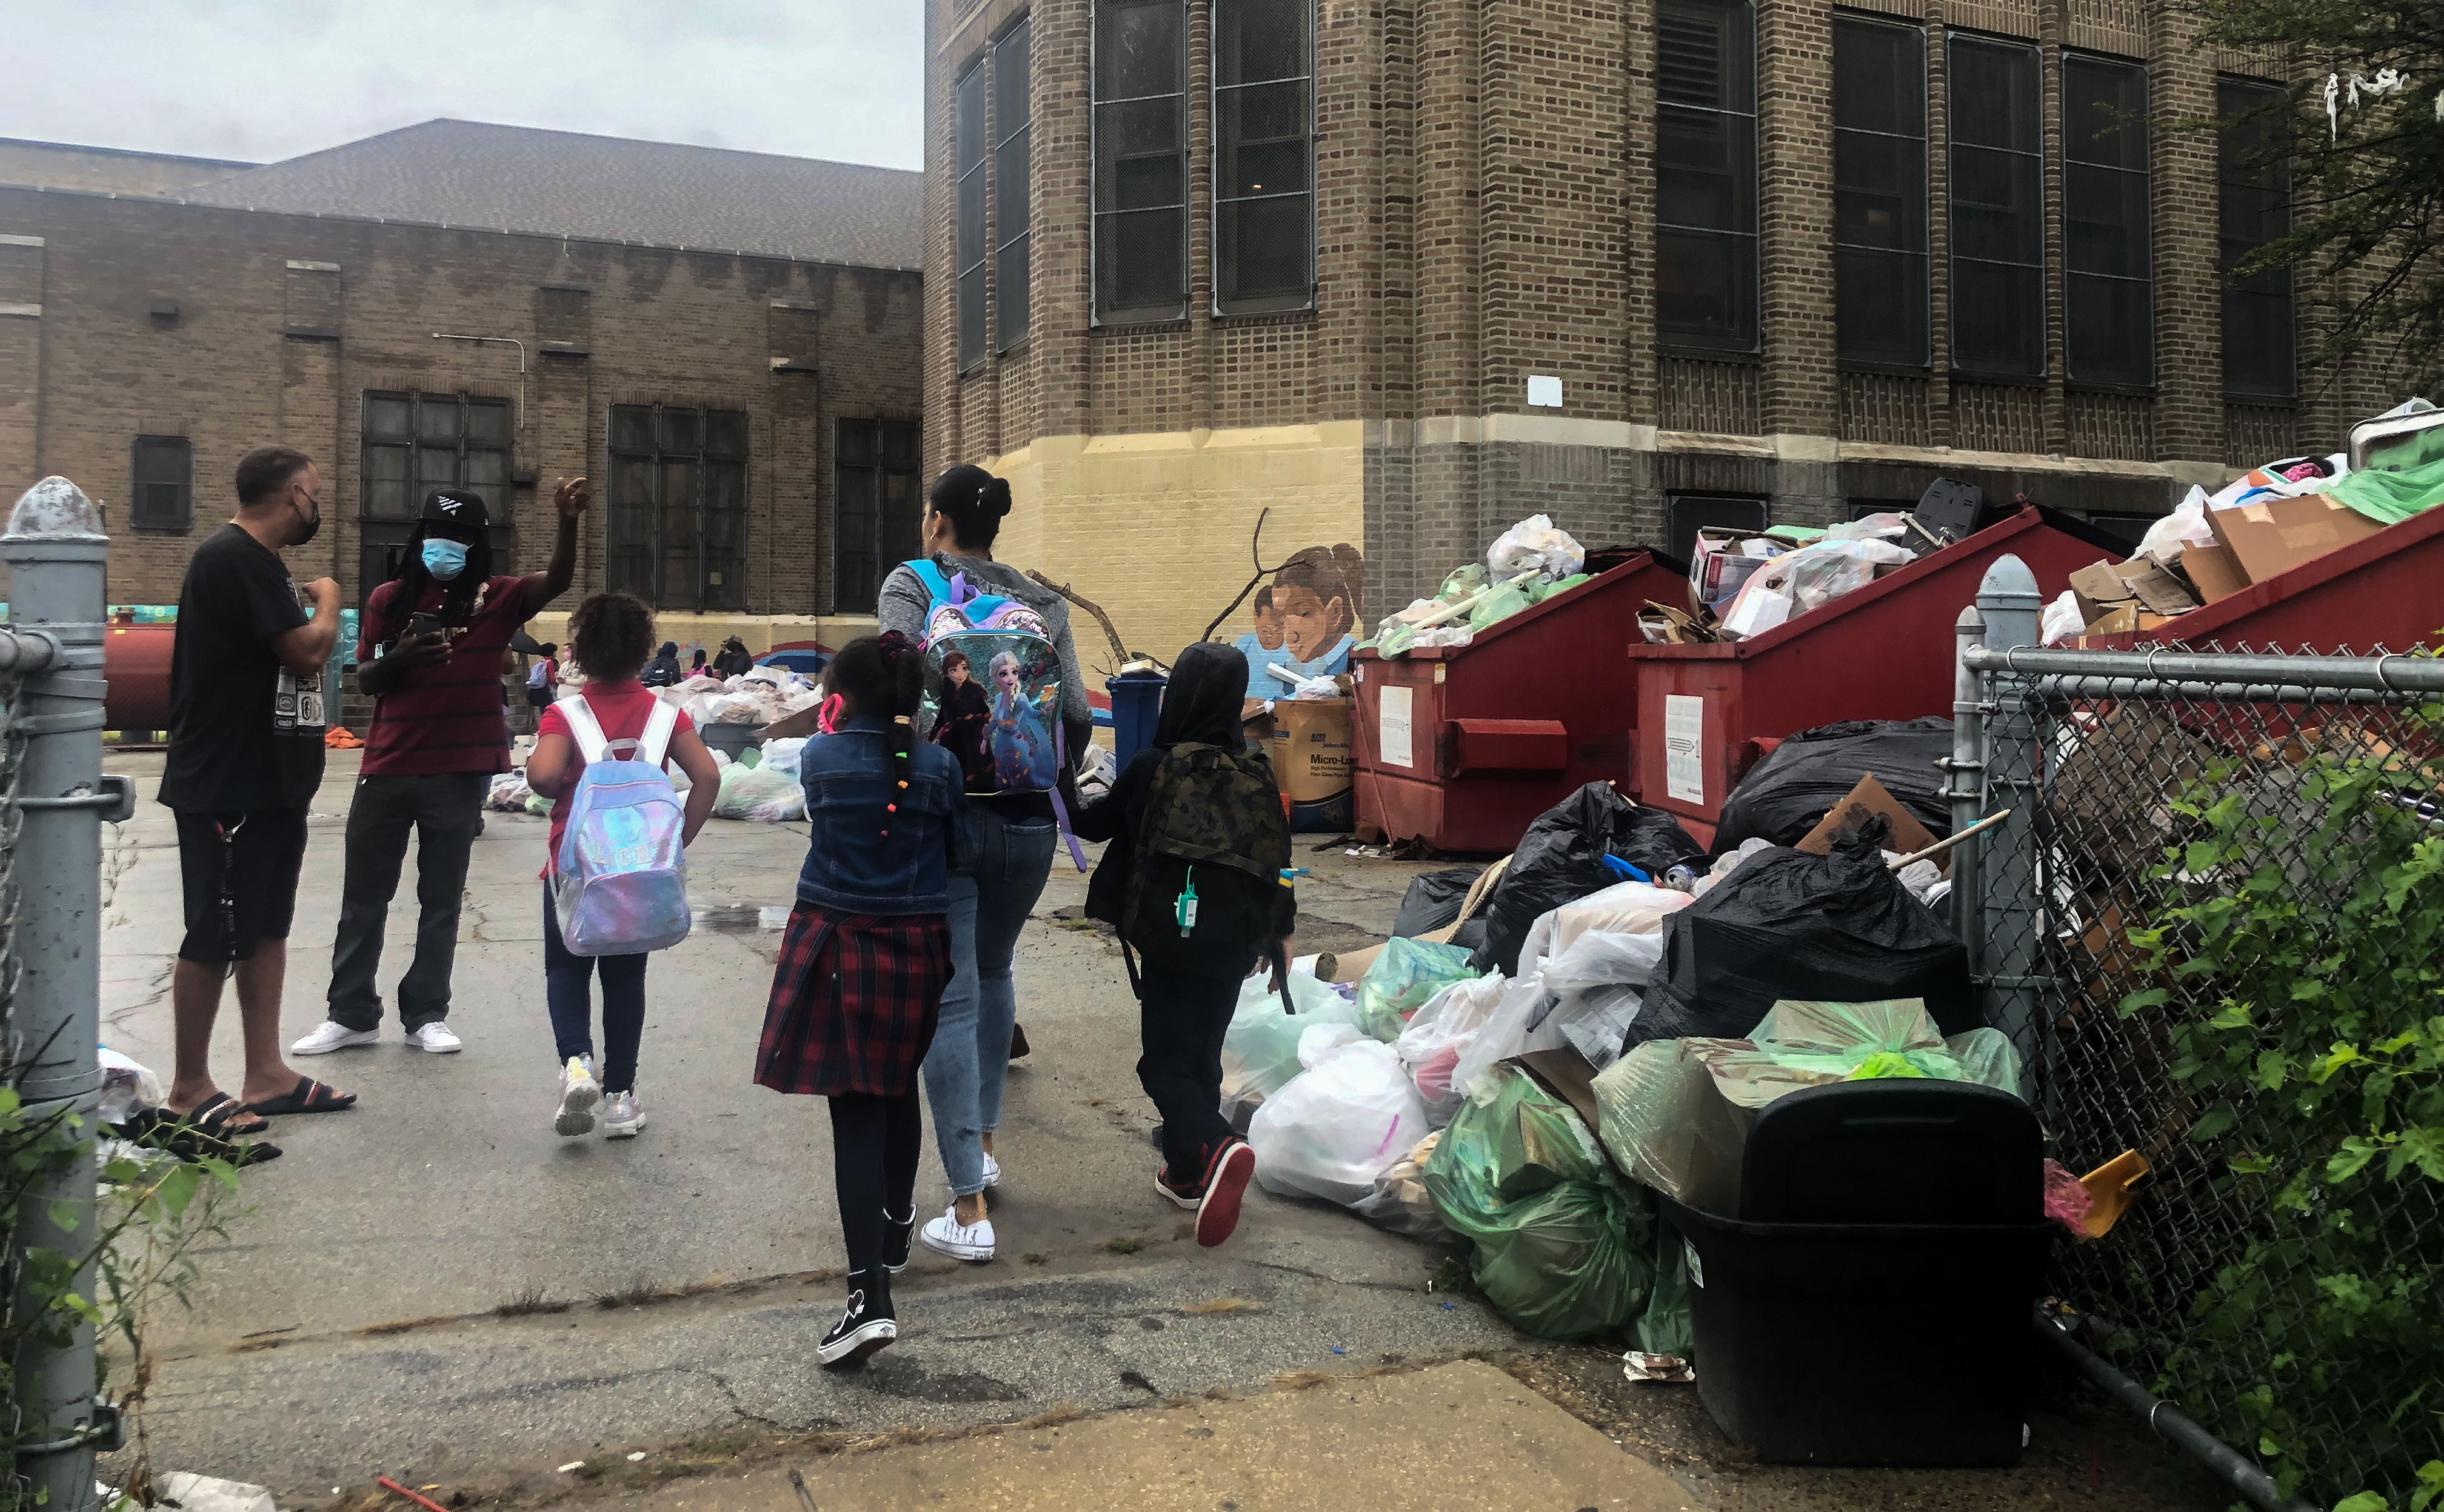 Children and adults were dark clothing walk past clear and brown colored trash bags.